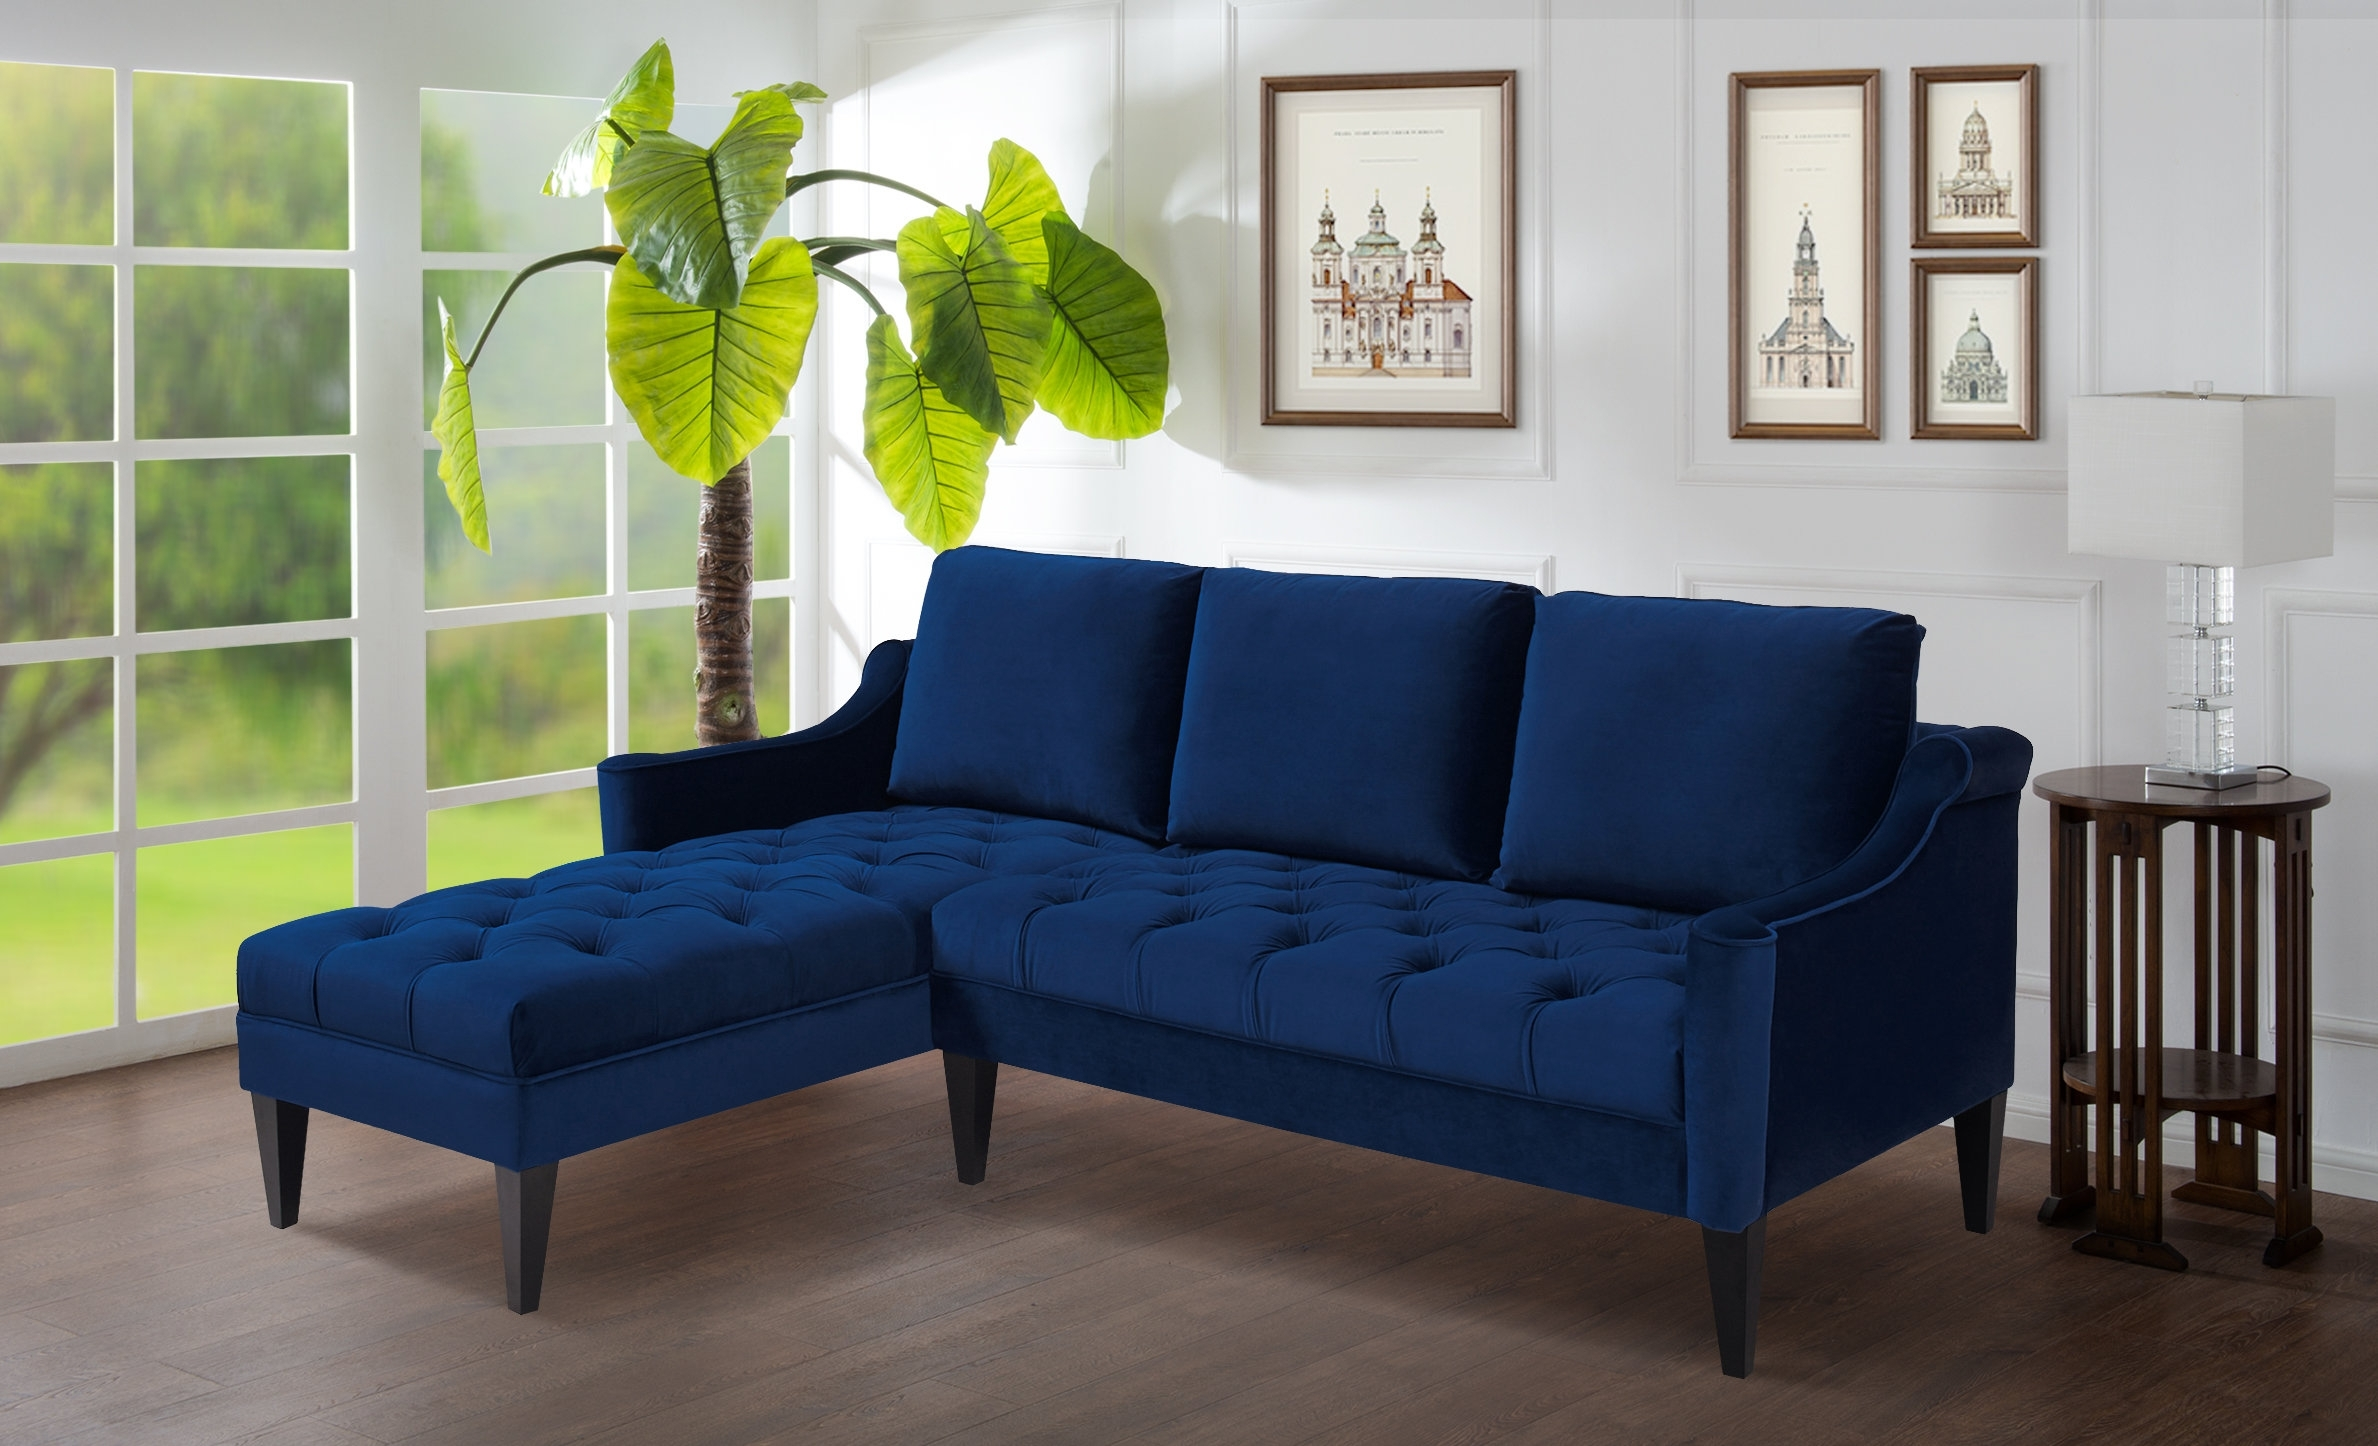 Willa Arlo Interiors Pamila Reversible Sectional & Reviews | Wayfair Regarding Collins Sofa Sectionals With Reversible Chaise (View 29 of 30)